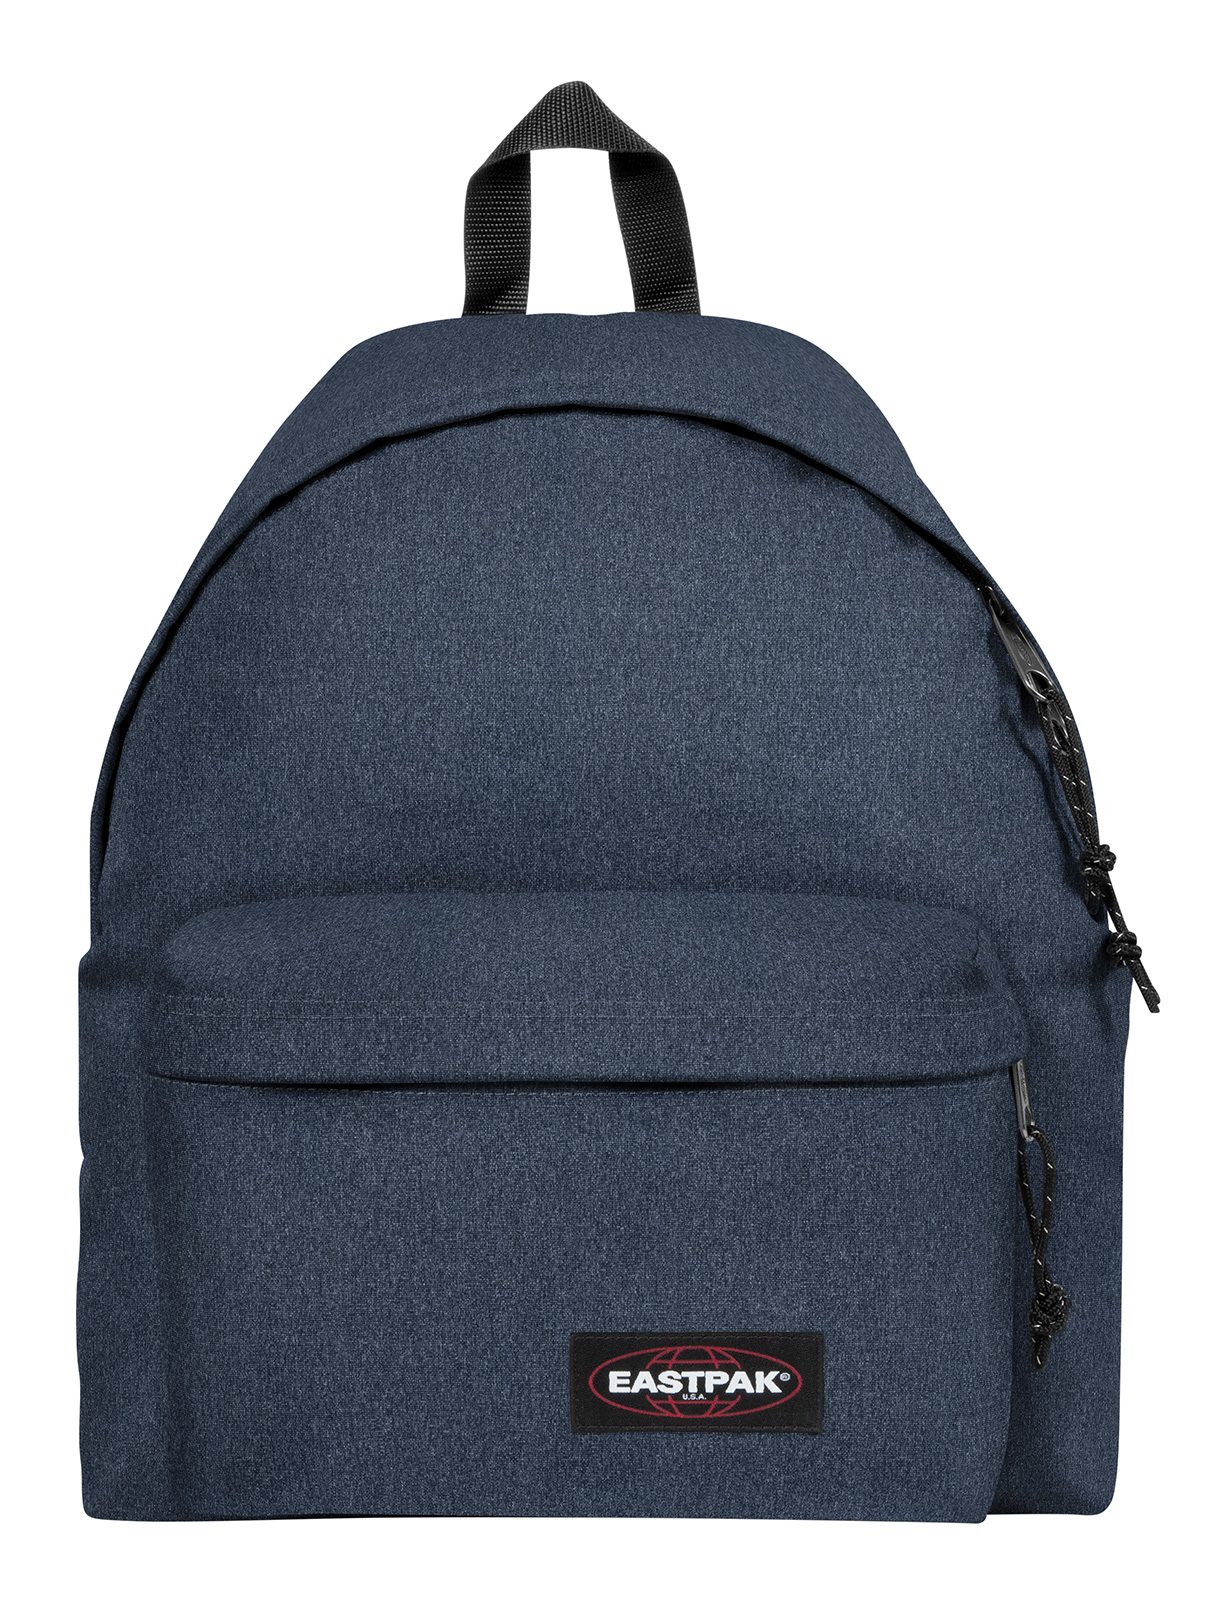 Eastpak Padded Pak R Leather Backpack In Black For Men: Eastpak Double Denim Padded Pak R Logo Backpack